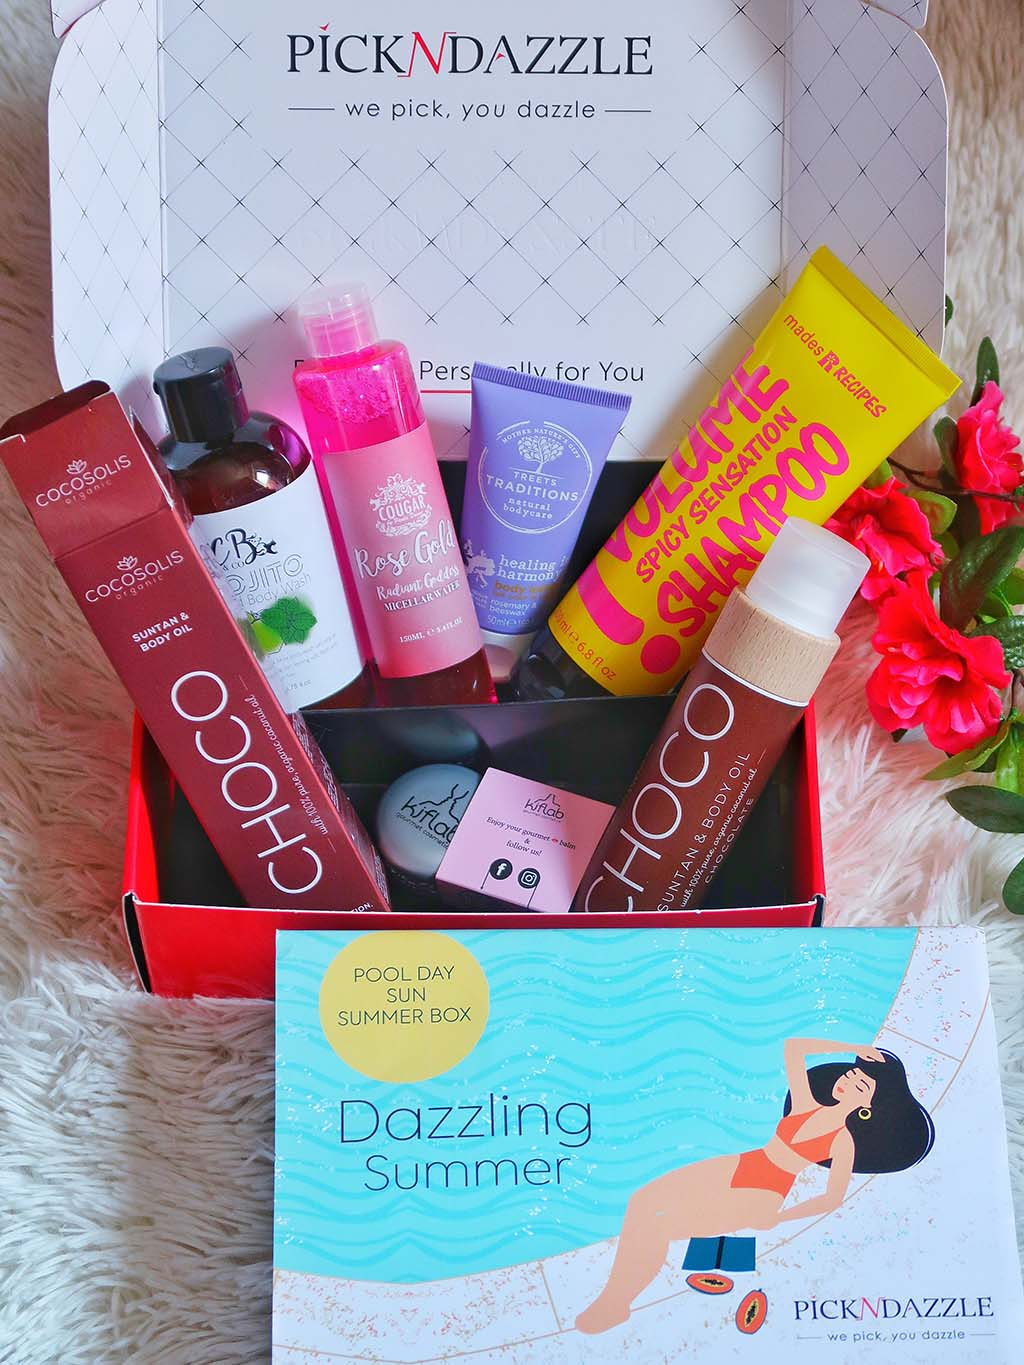 unboxing pick n dazzling summer beauty boxes cutii cutie frumusete pool day beac vacantion double box mades recipes cougar cocosolis choco treets traditions kiflab